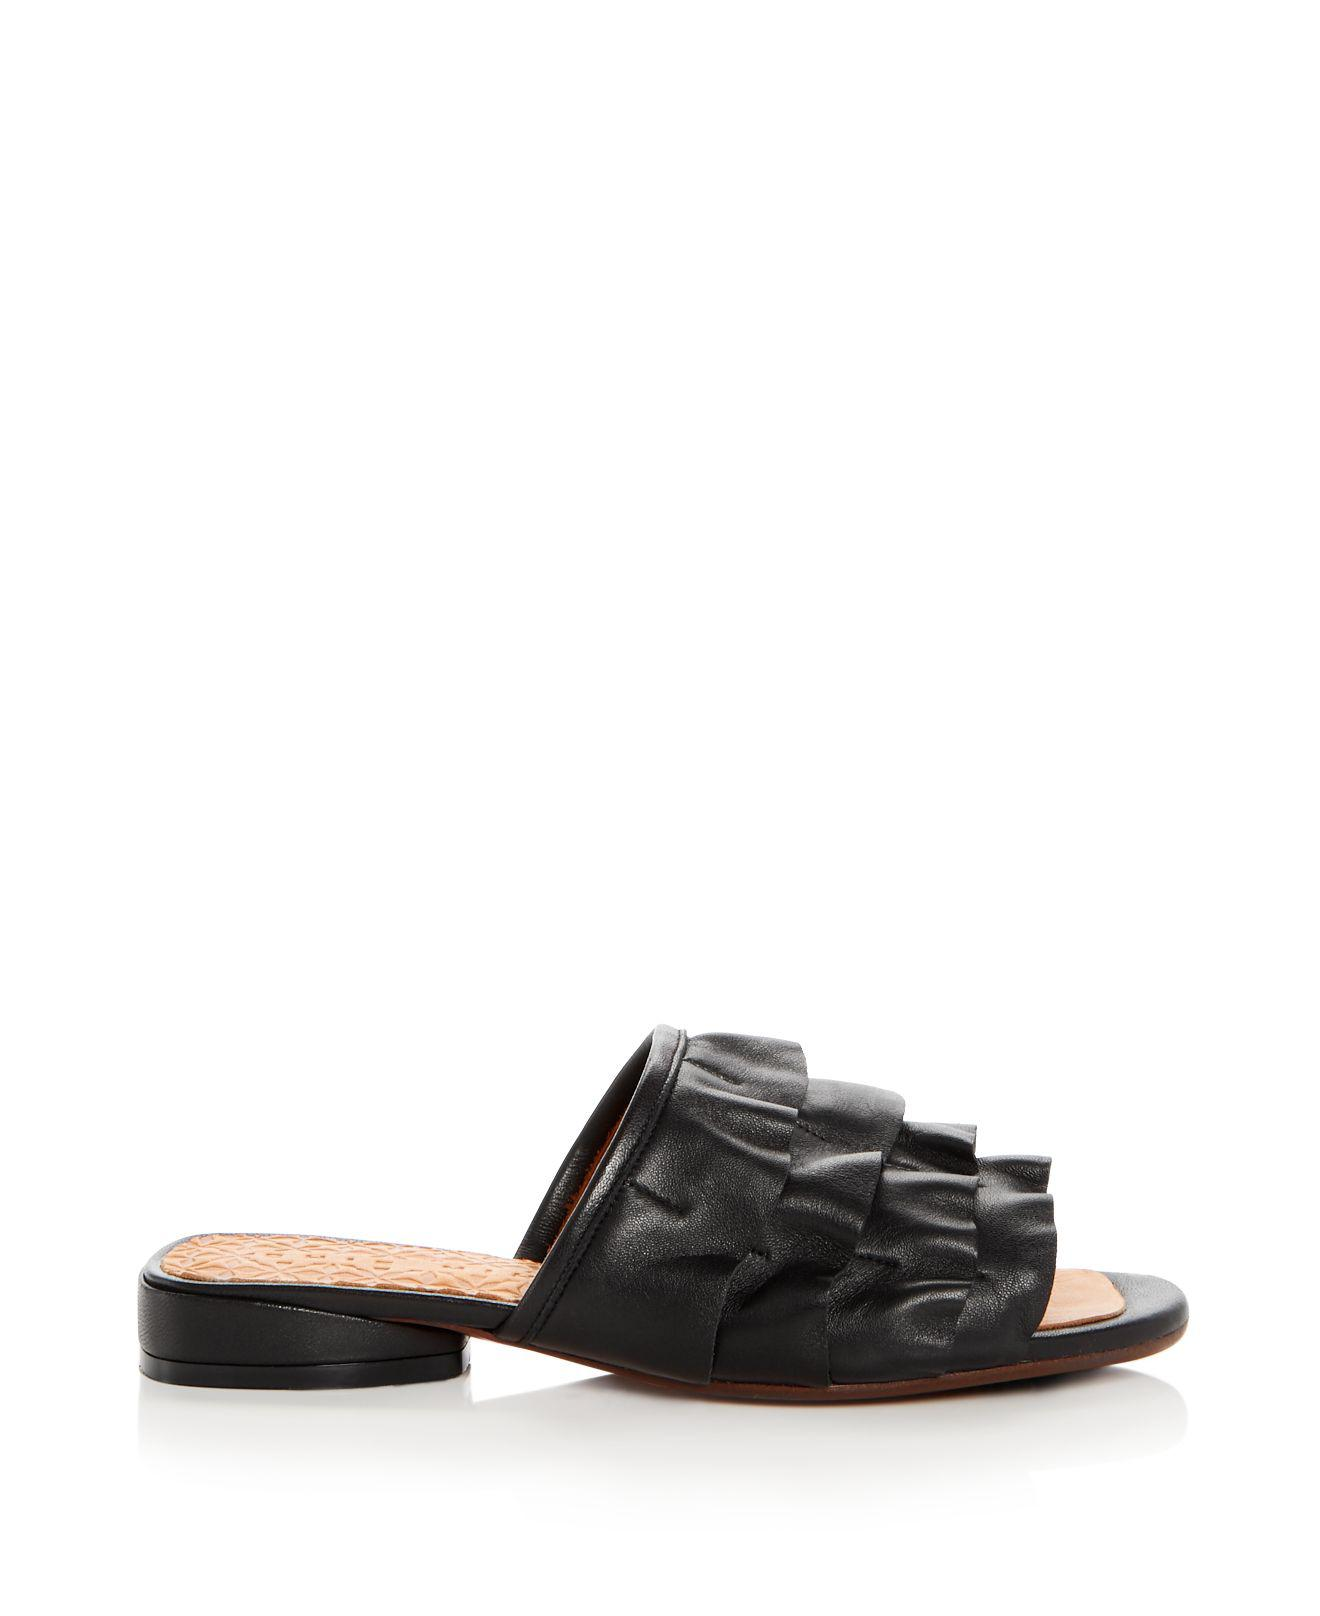 Chie Mihara Women's Volante Leather Ruffle Slide Sandals m1nYbitfj